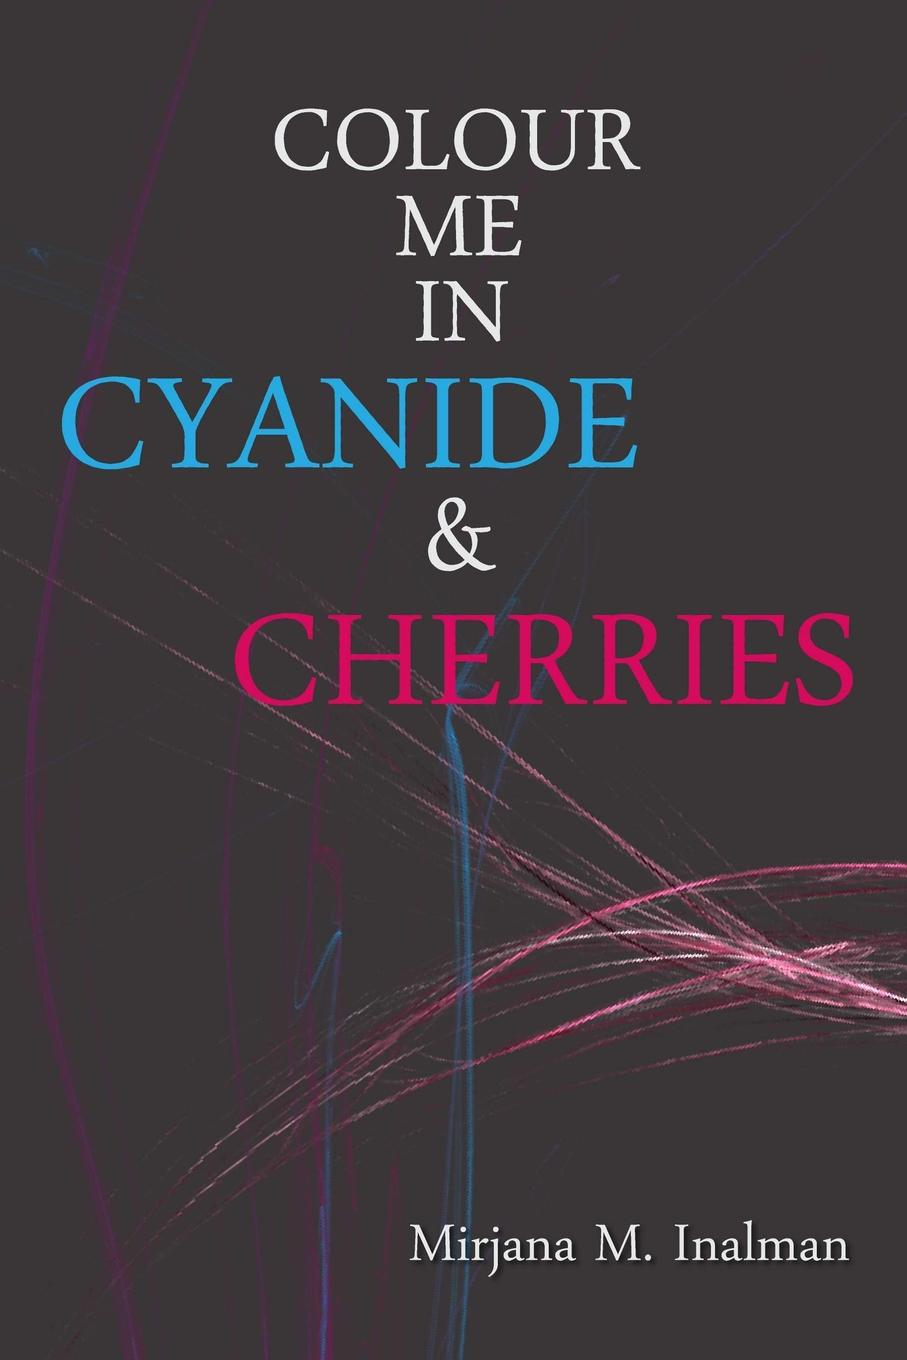 Colour Me In Cyanide . Cherries A collection of eclectic poetry, a gumbo of metaphors omens...